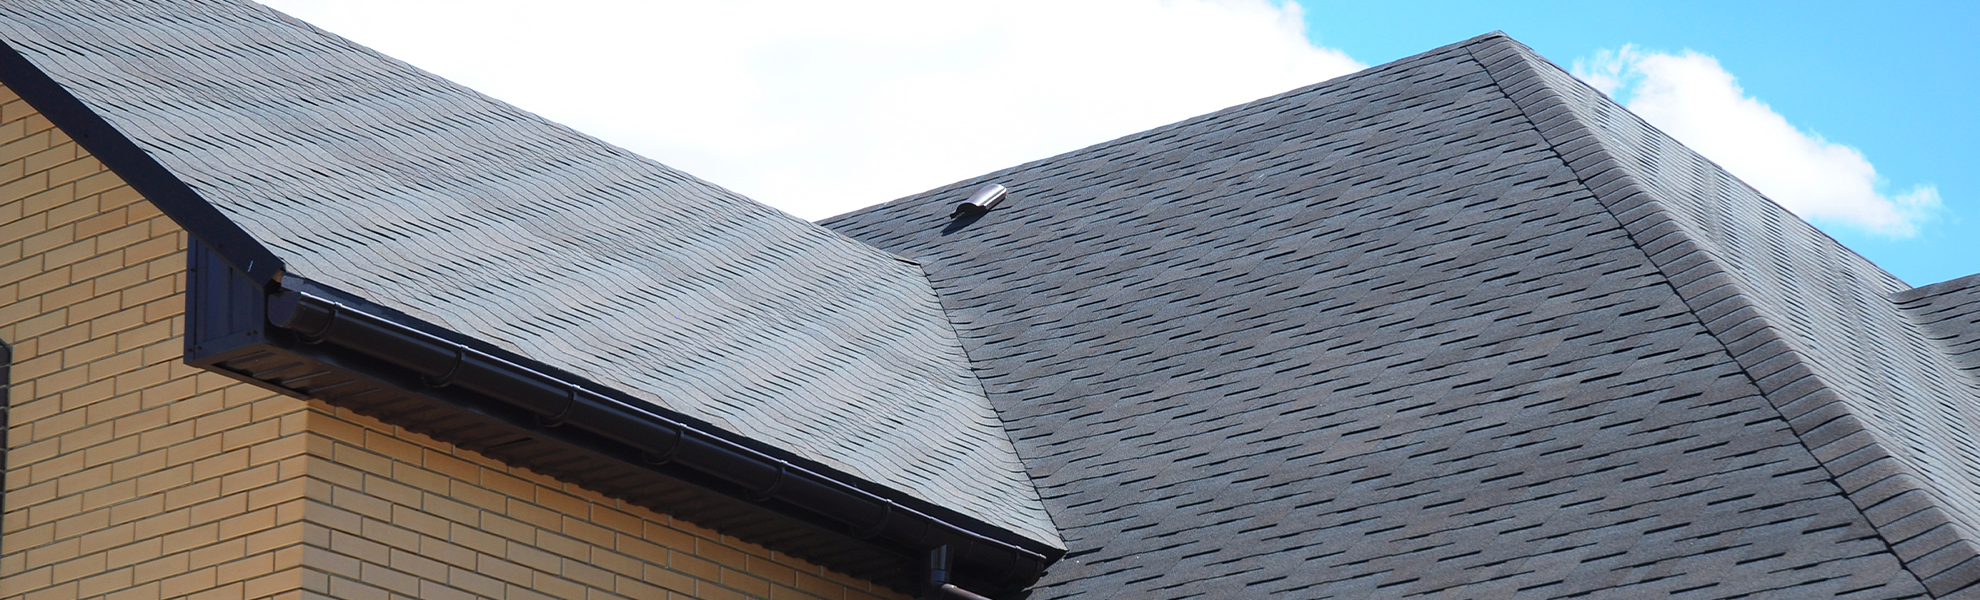 Boehm Roofing  Images